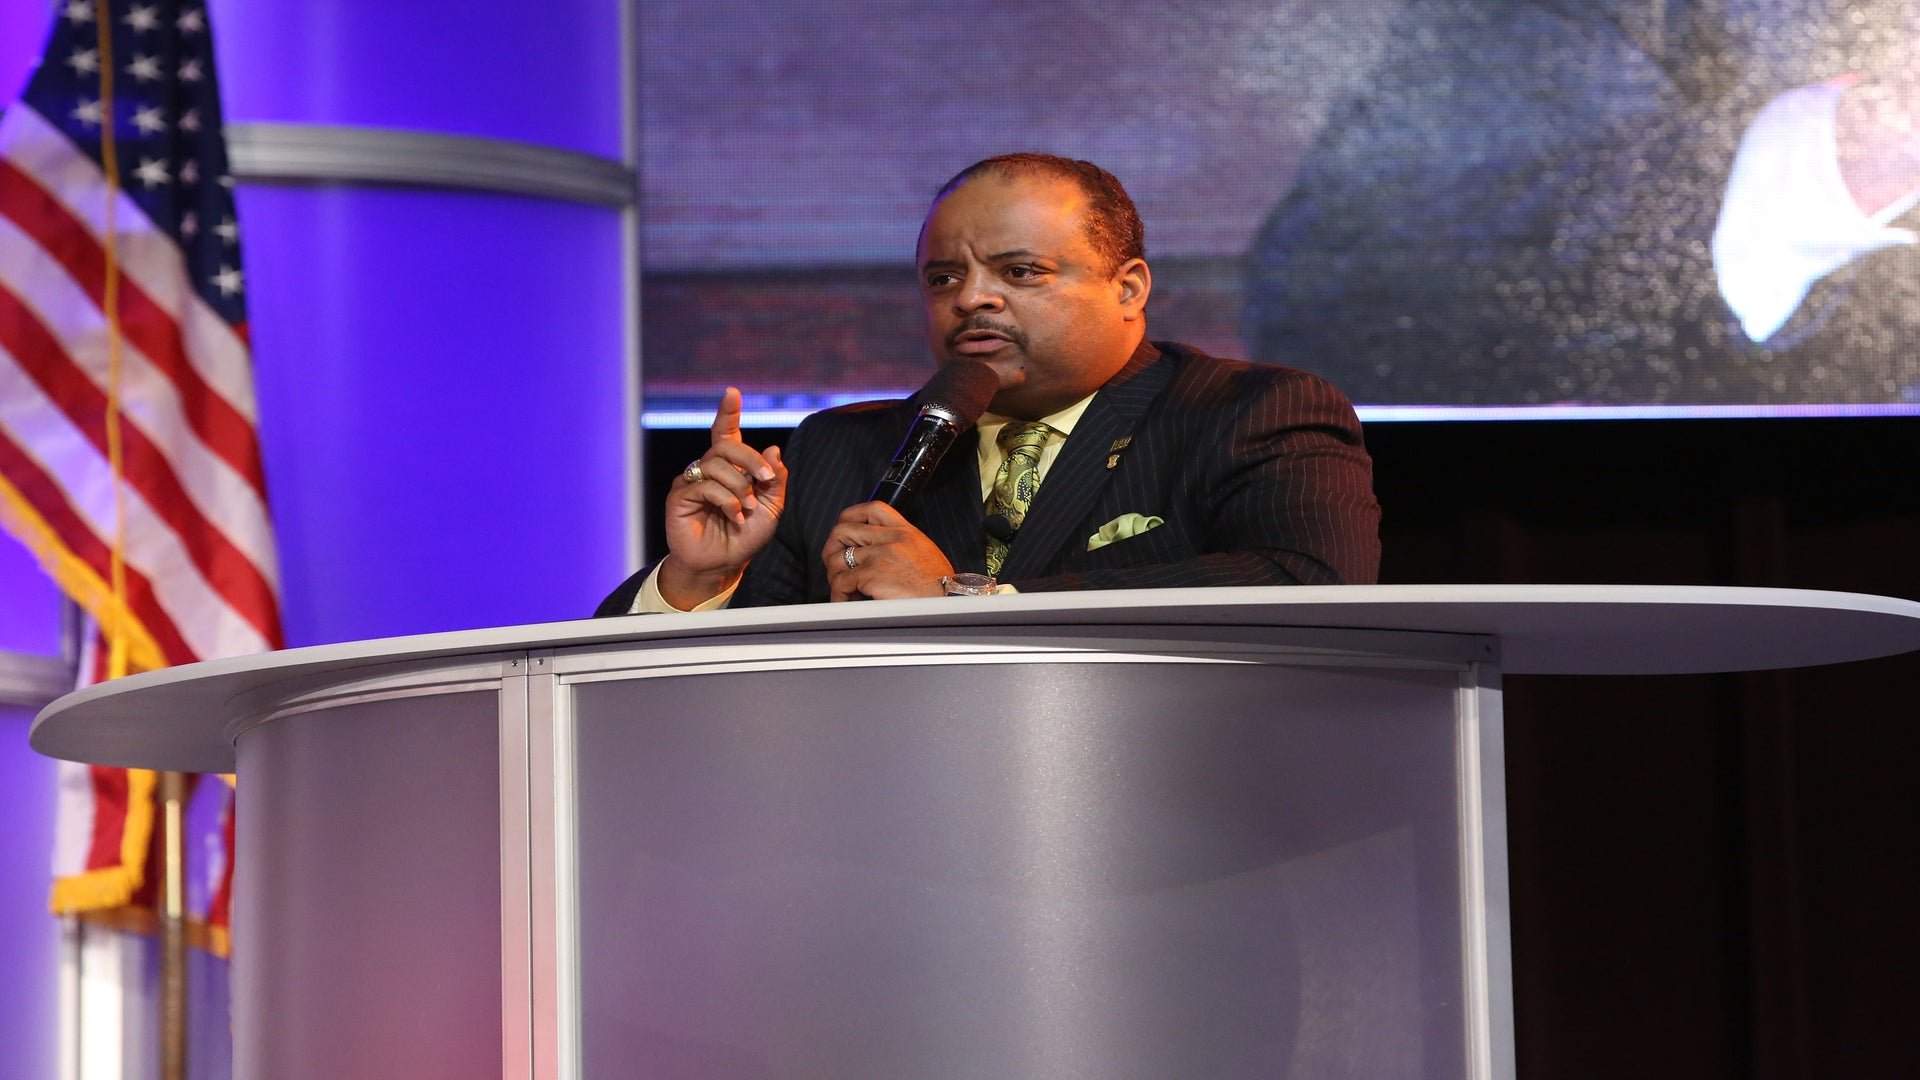 Roland Martin Fires Back At Mo'Nique For Questioning His Record Supporting Women